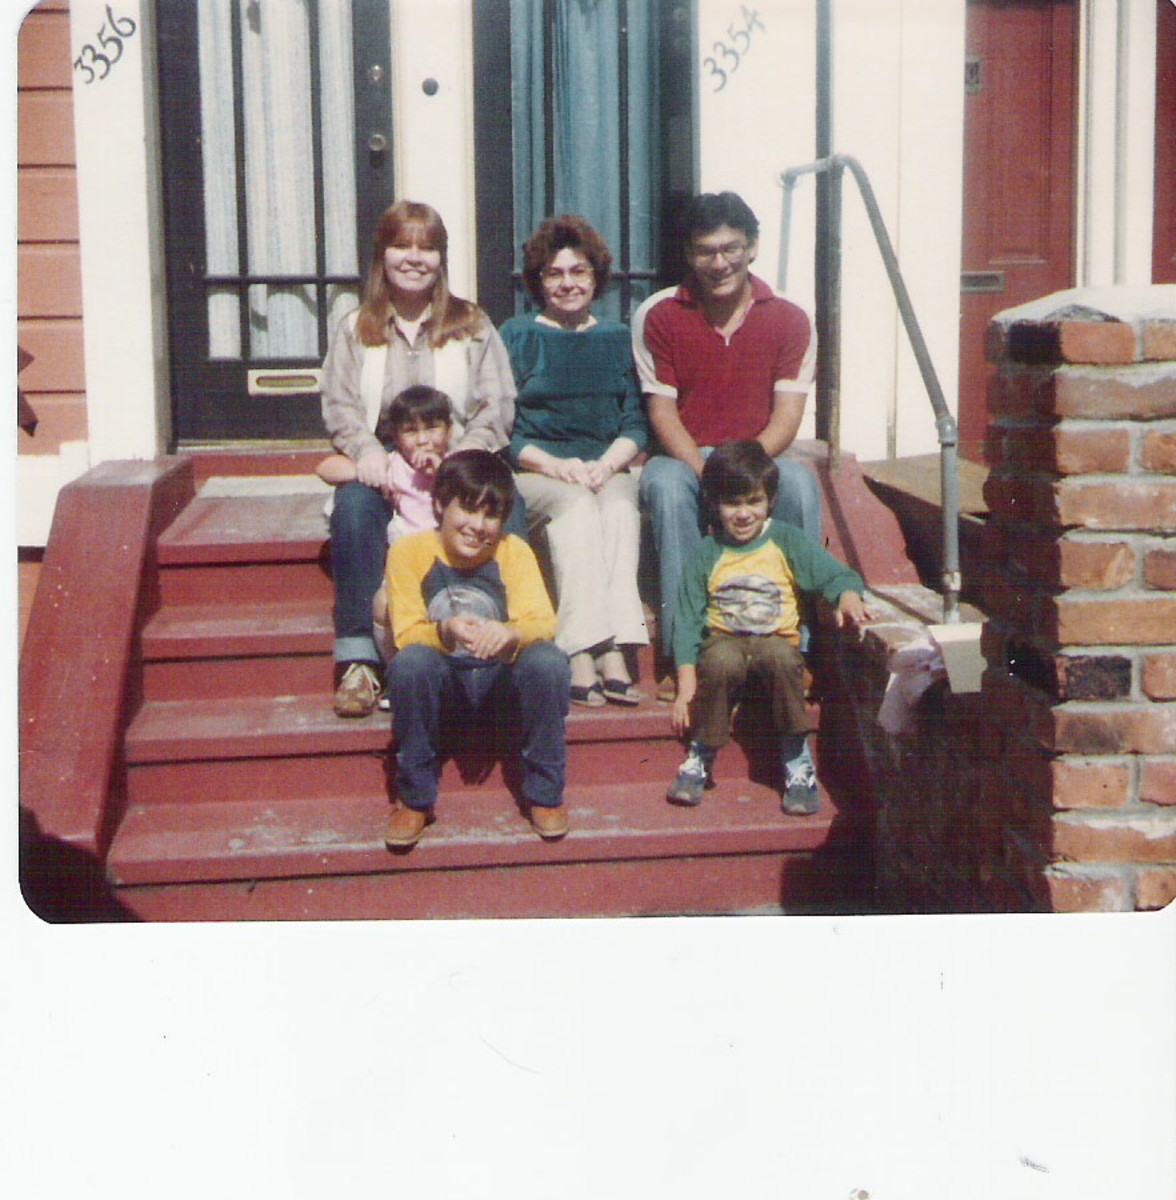 On our stoop with Aunt Vicky